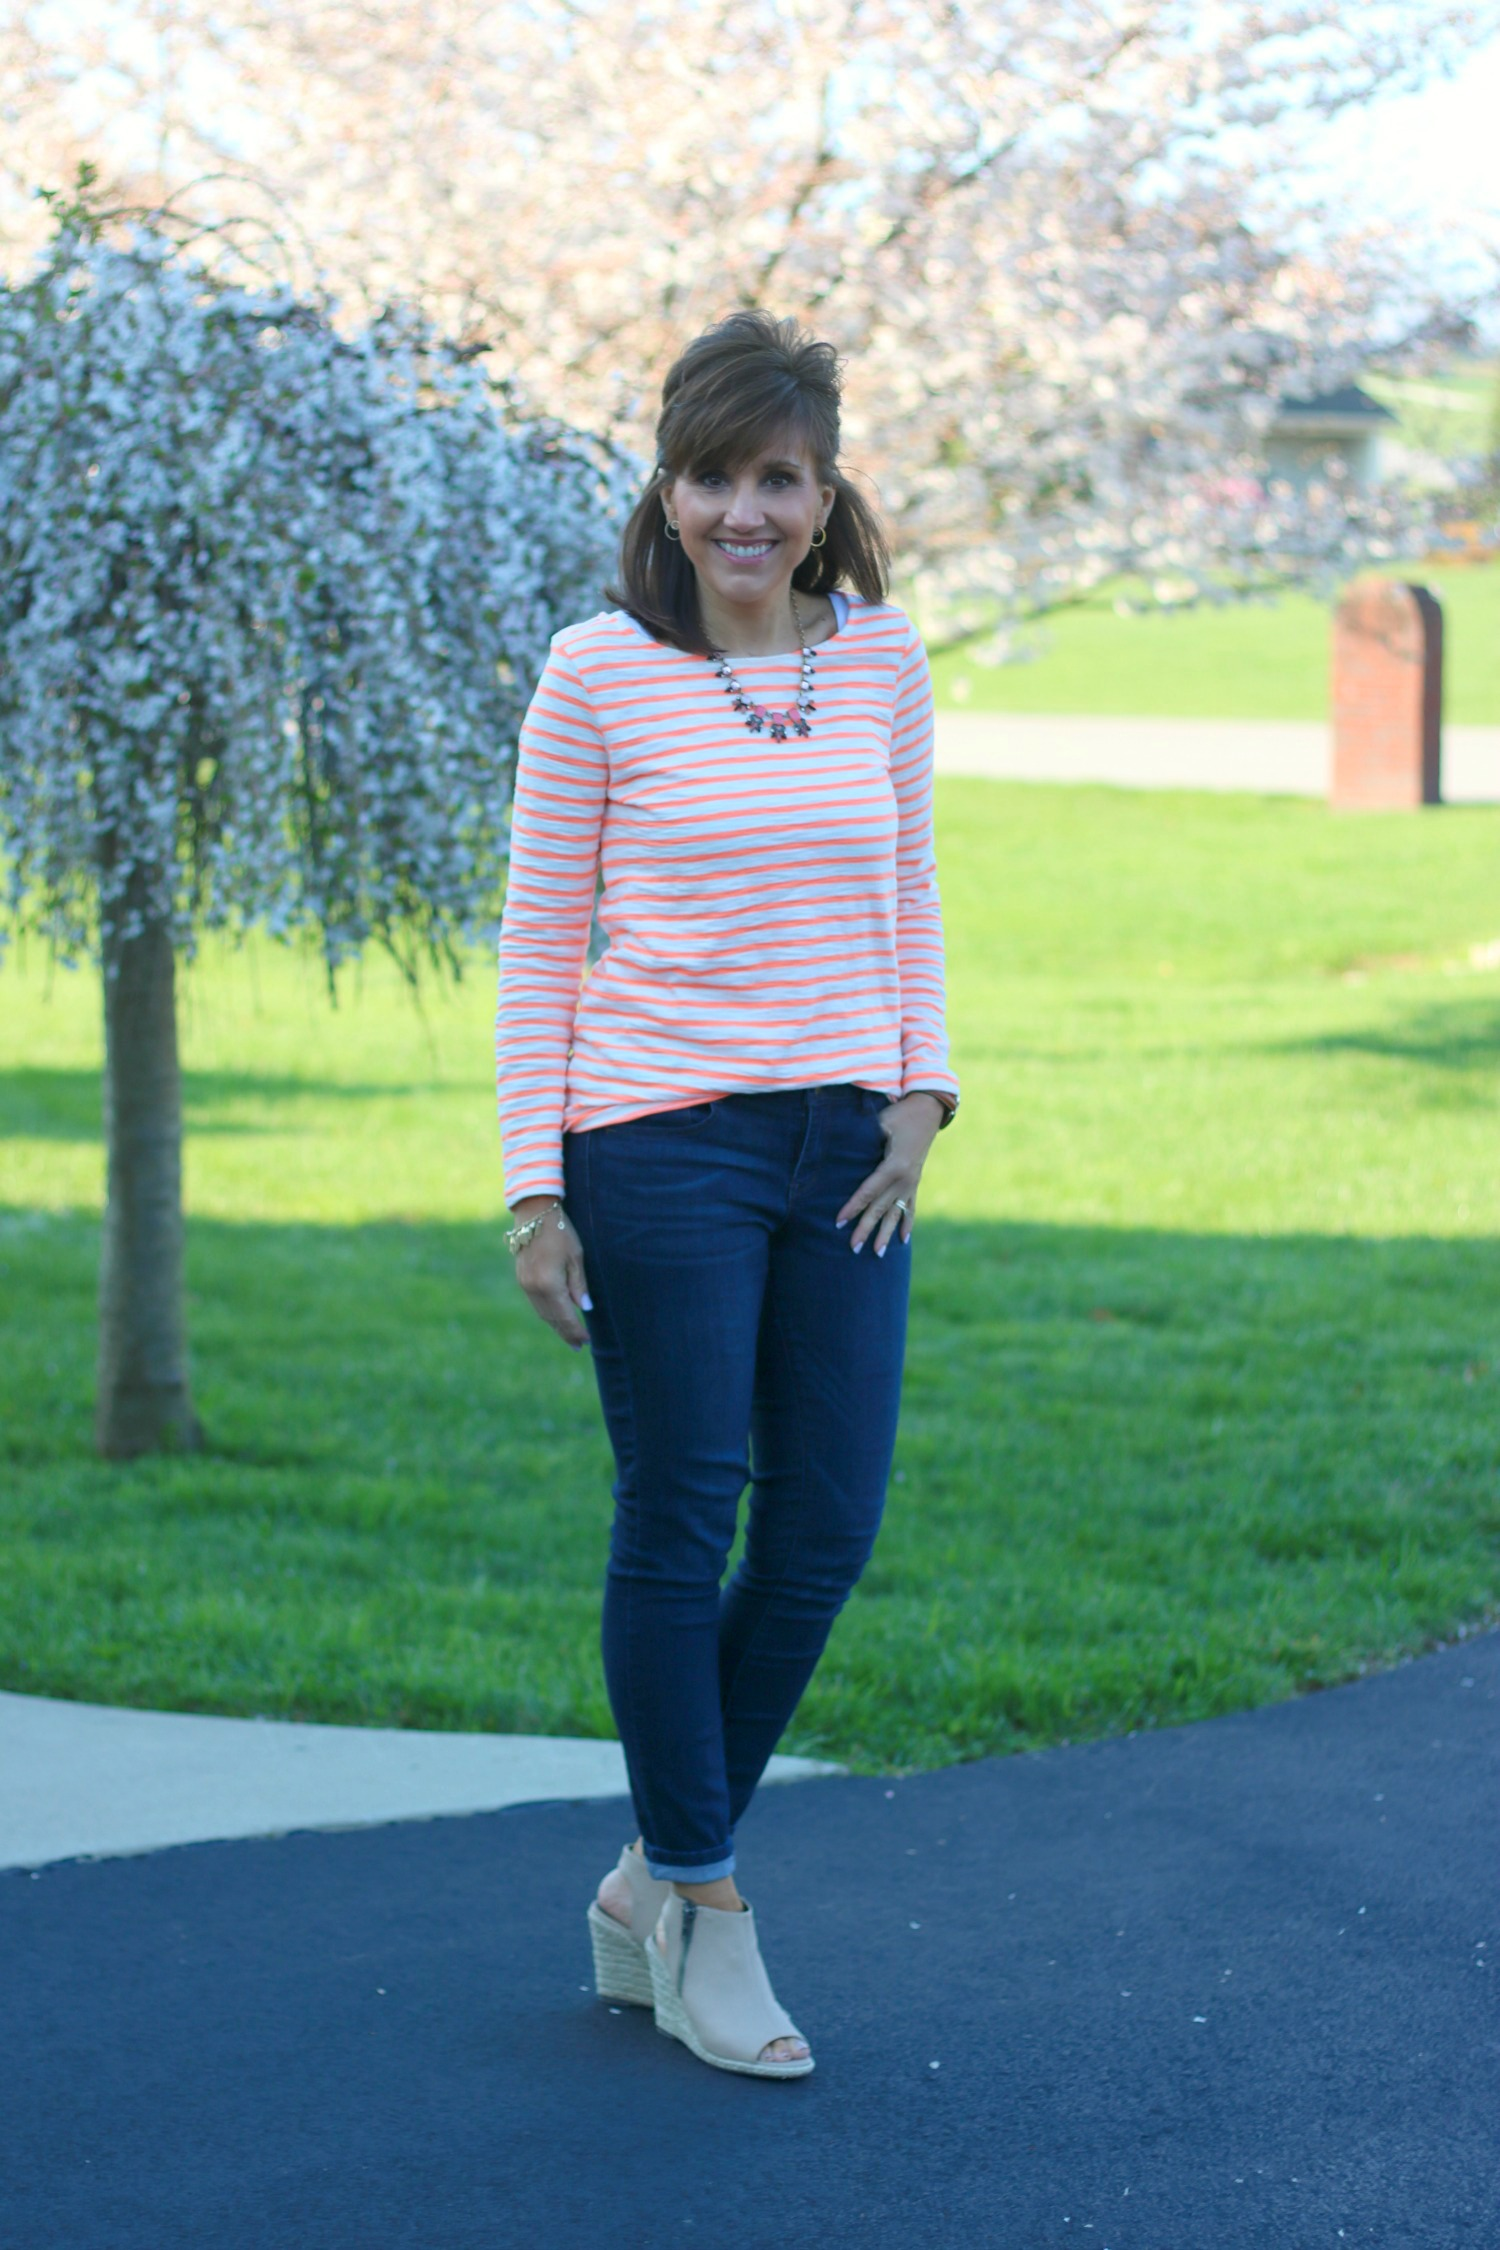 27 Days of Spring Fashion: Casual Weekend Outfit